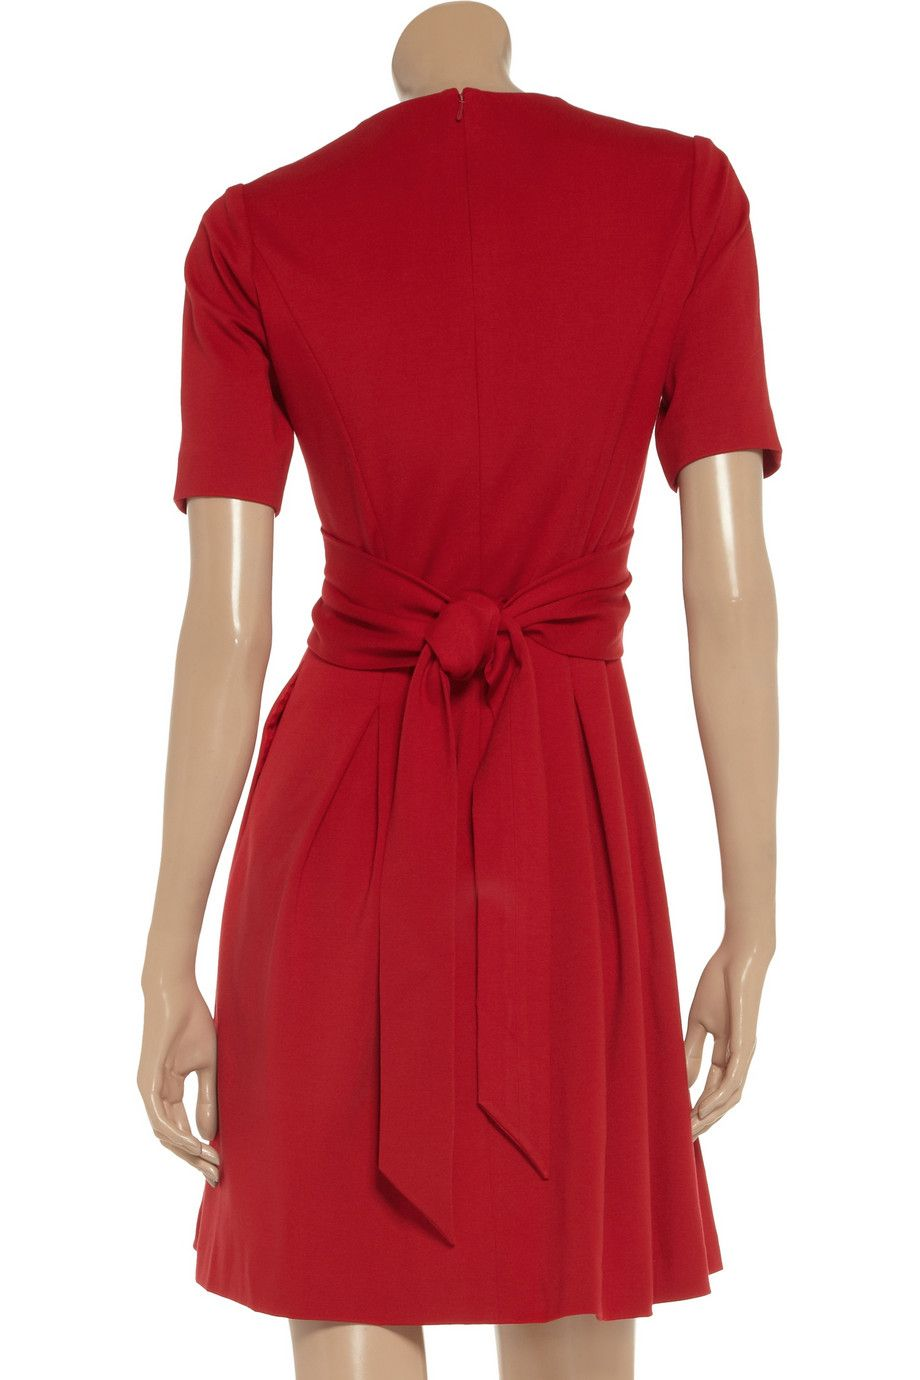 Issa Pleated stretch-jersey dress - 55% Off Now at THE OUTNET